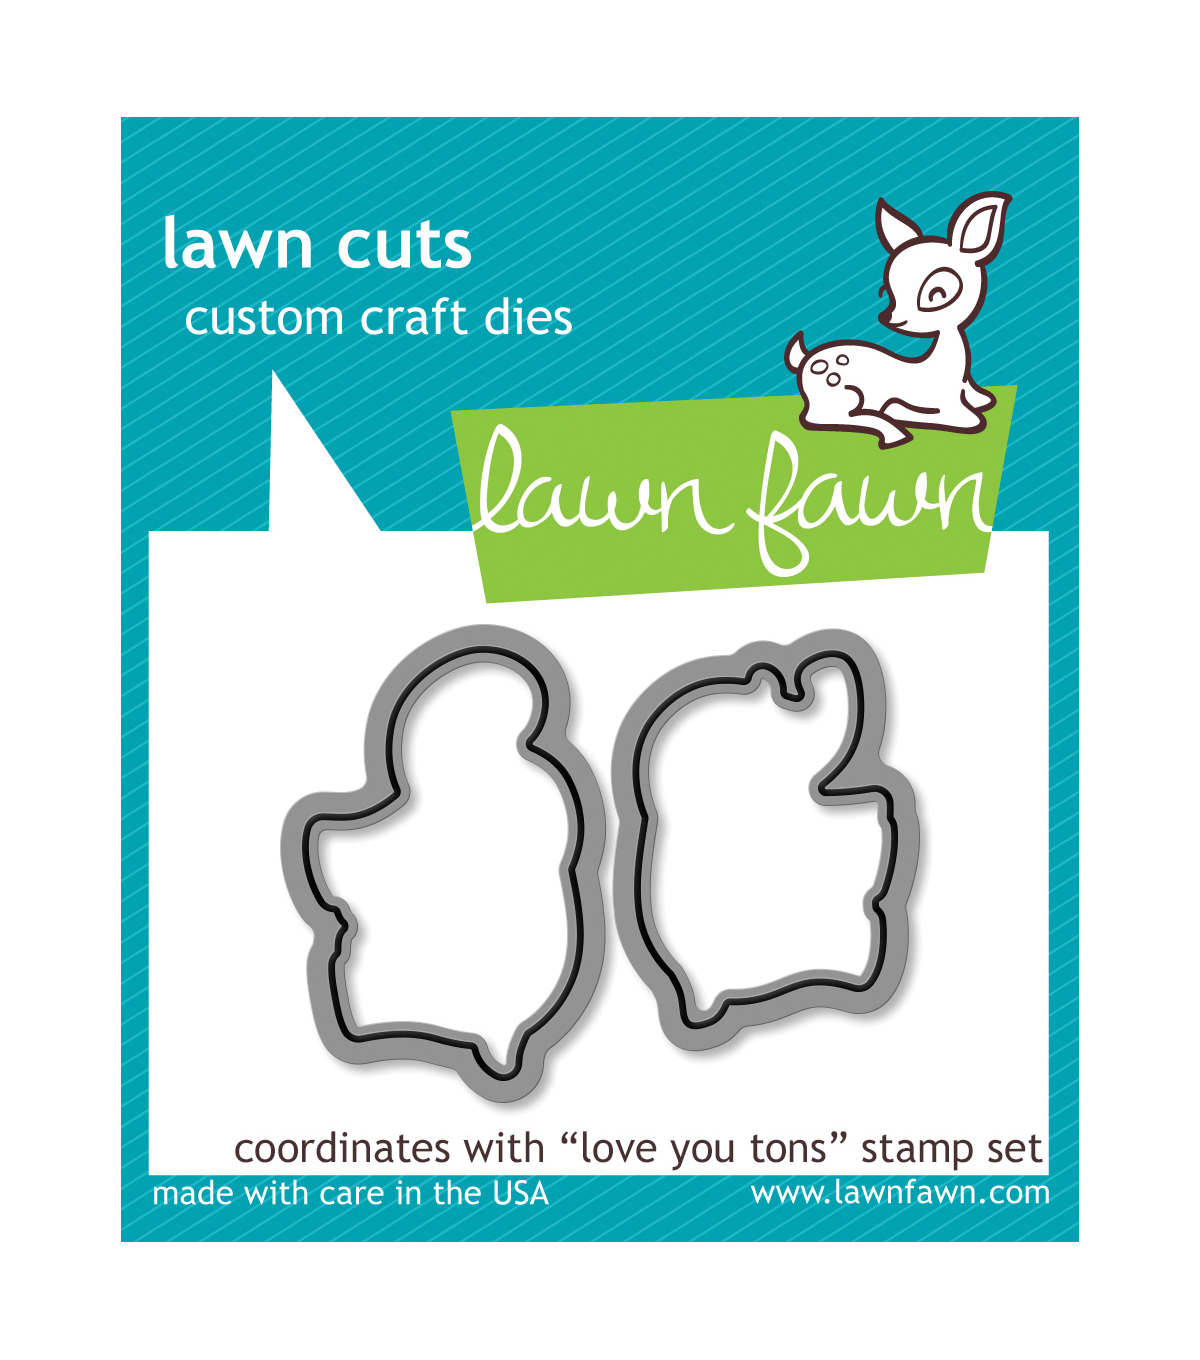 Lawn Fawn Lawn Cuts Custom Craft Die -Love You Tons